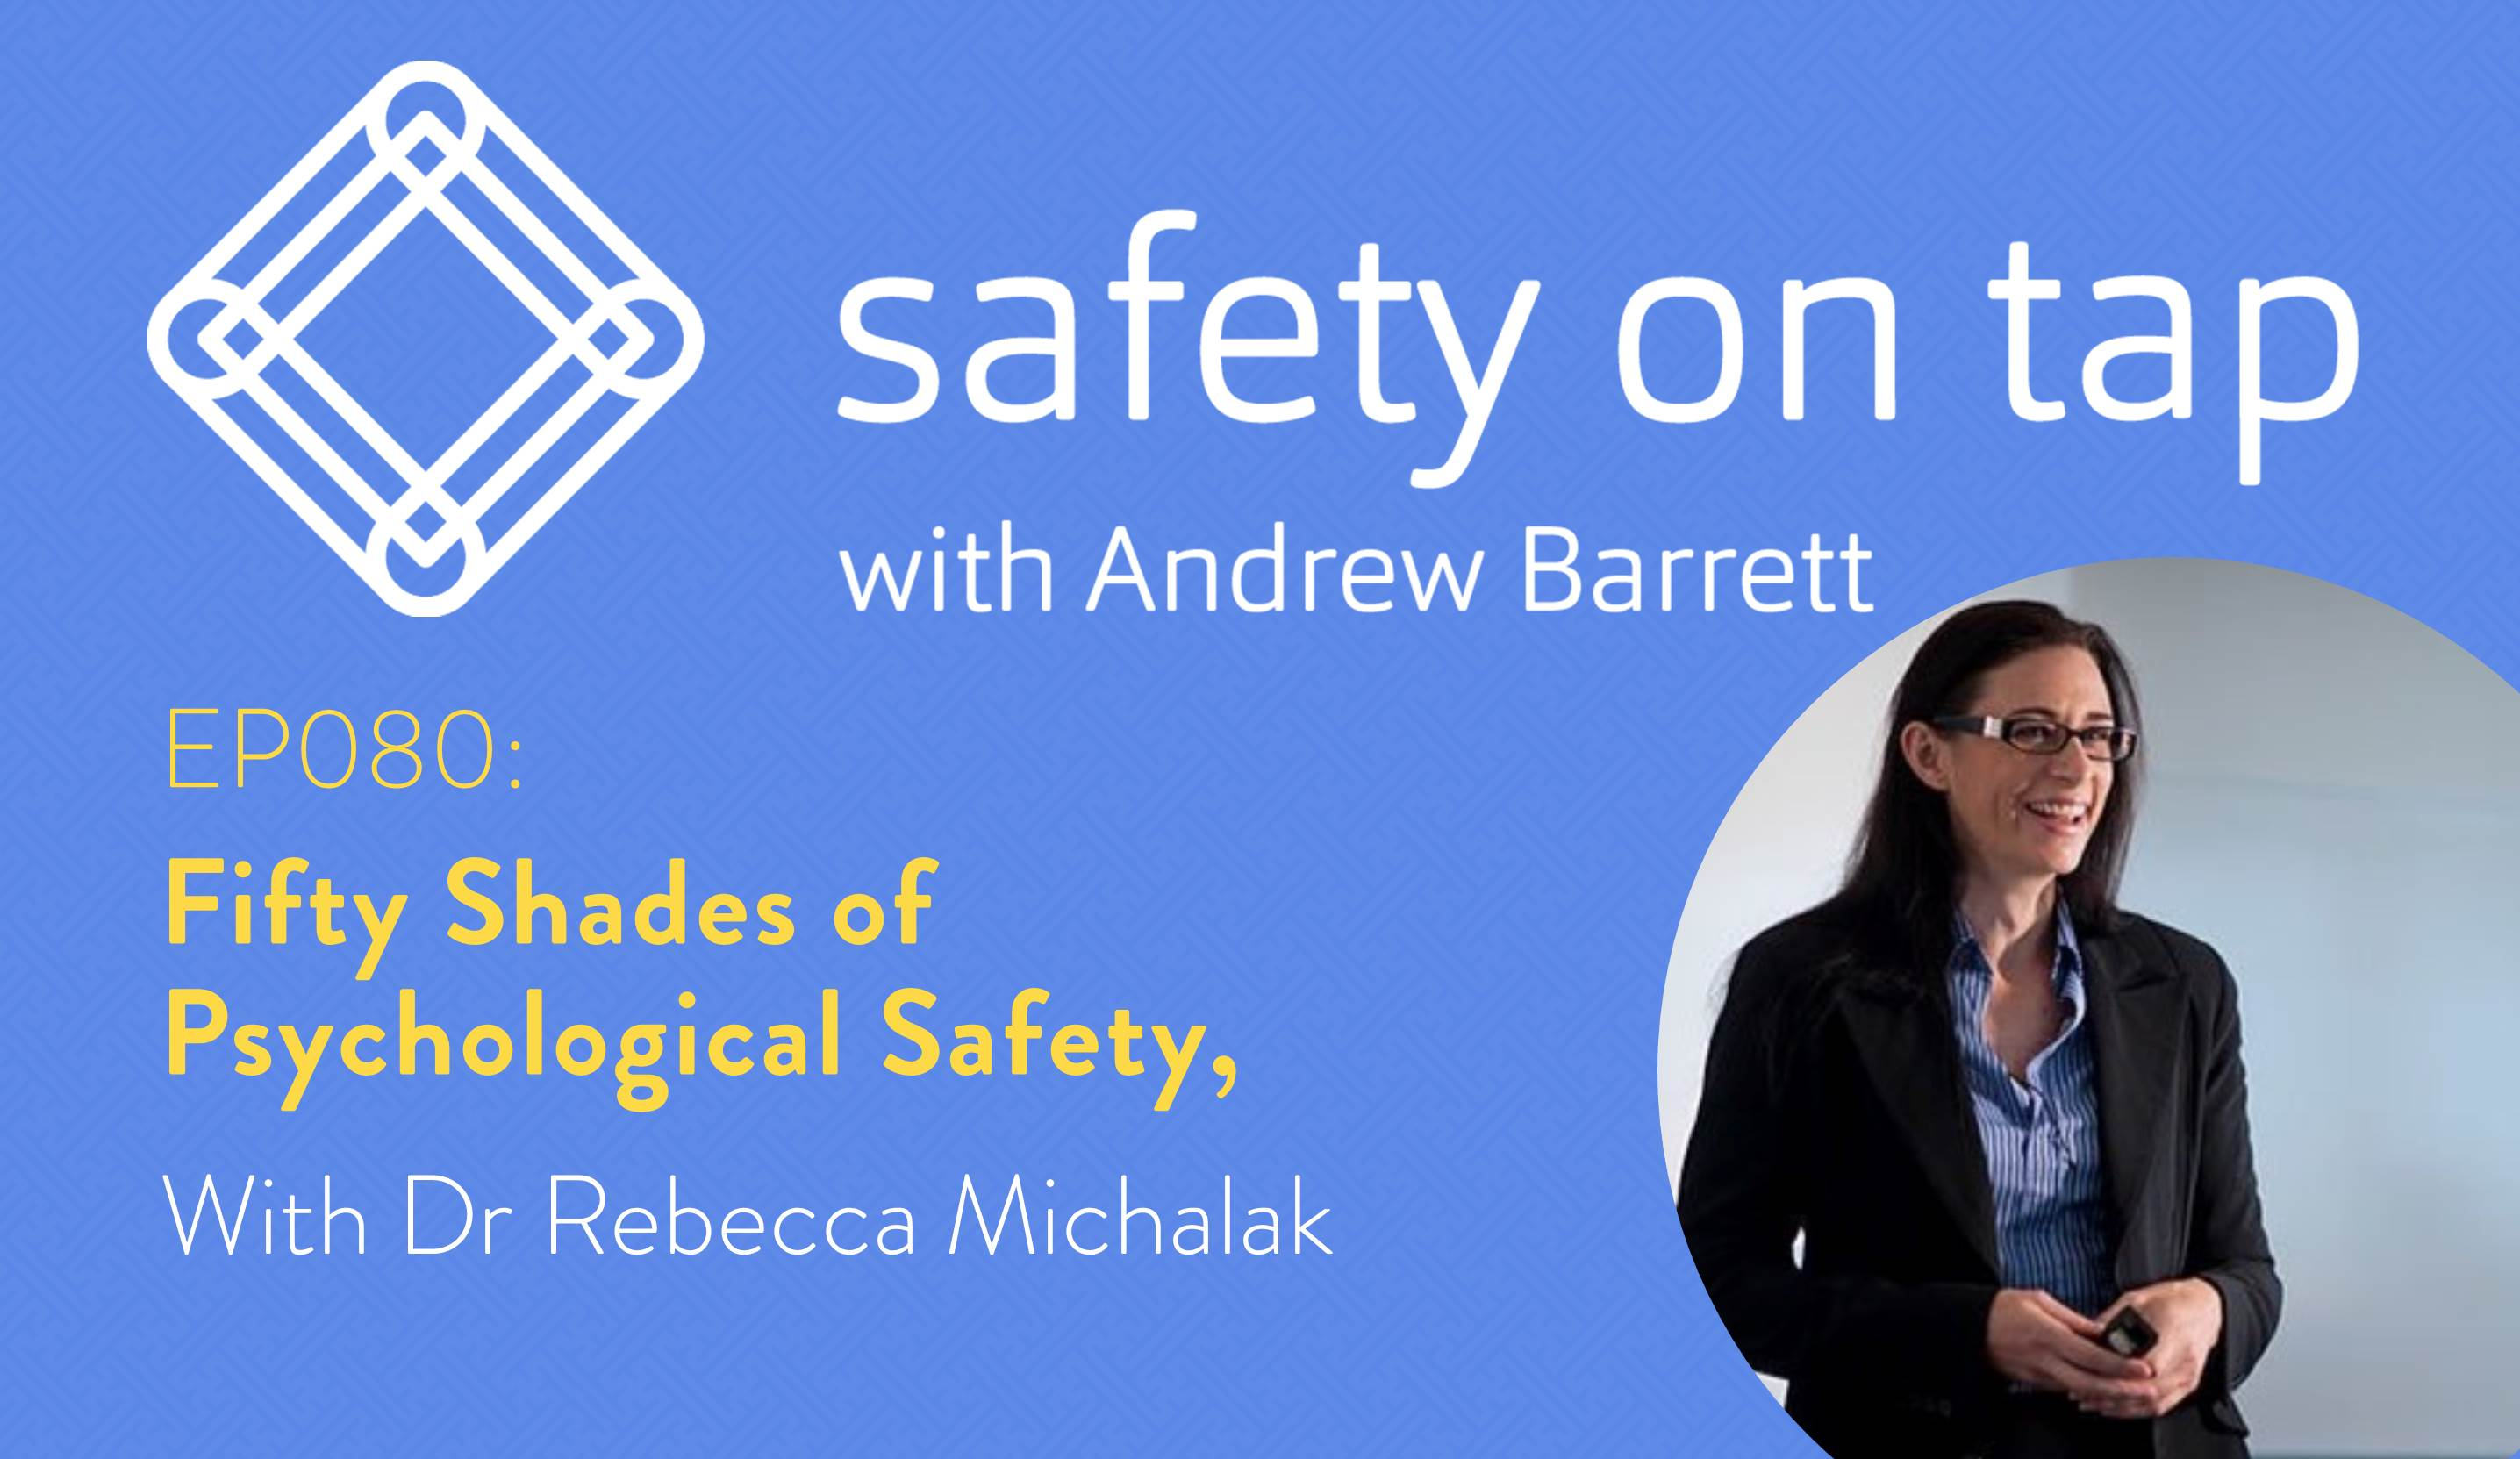 Ep080: Fifty Shades of Psychological Safety, with Dr Rebecca Michalak